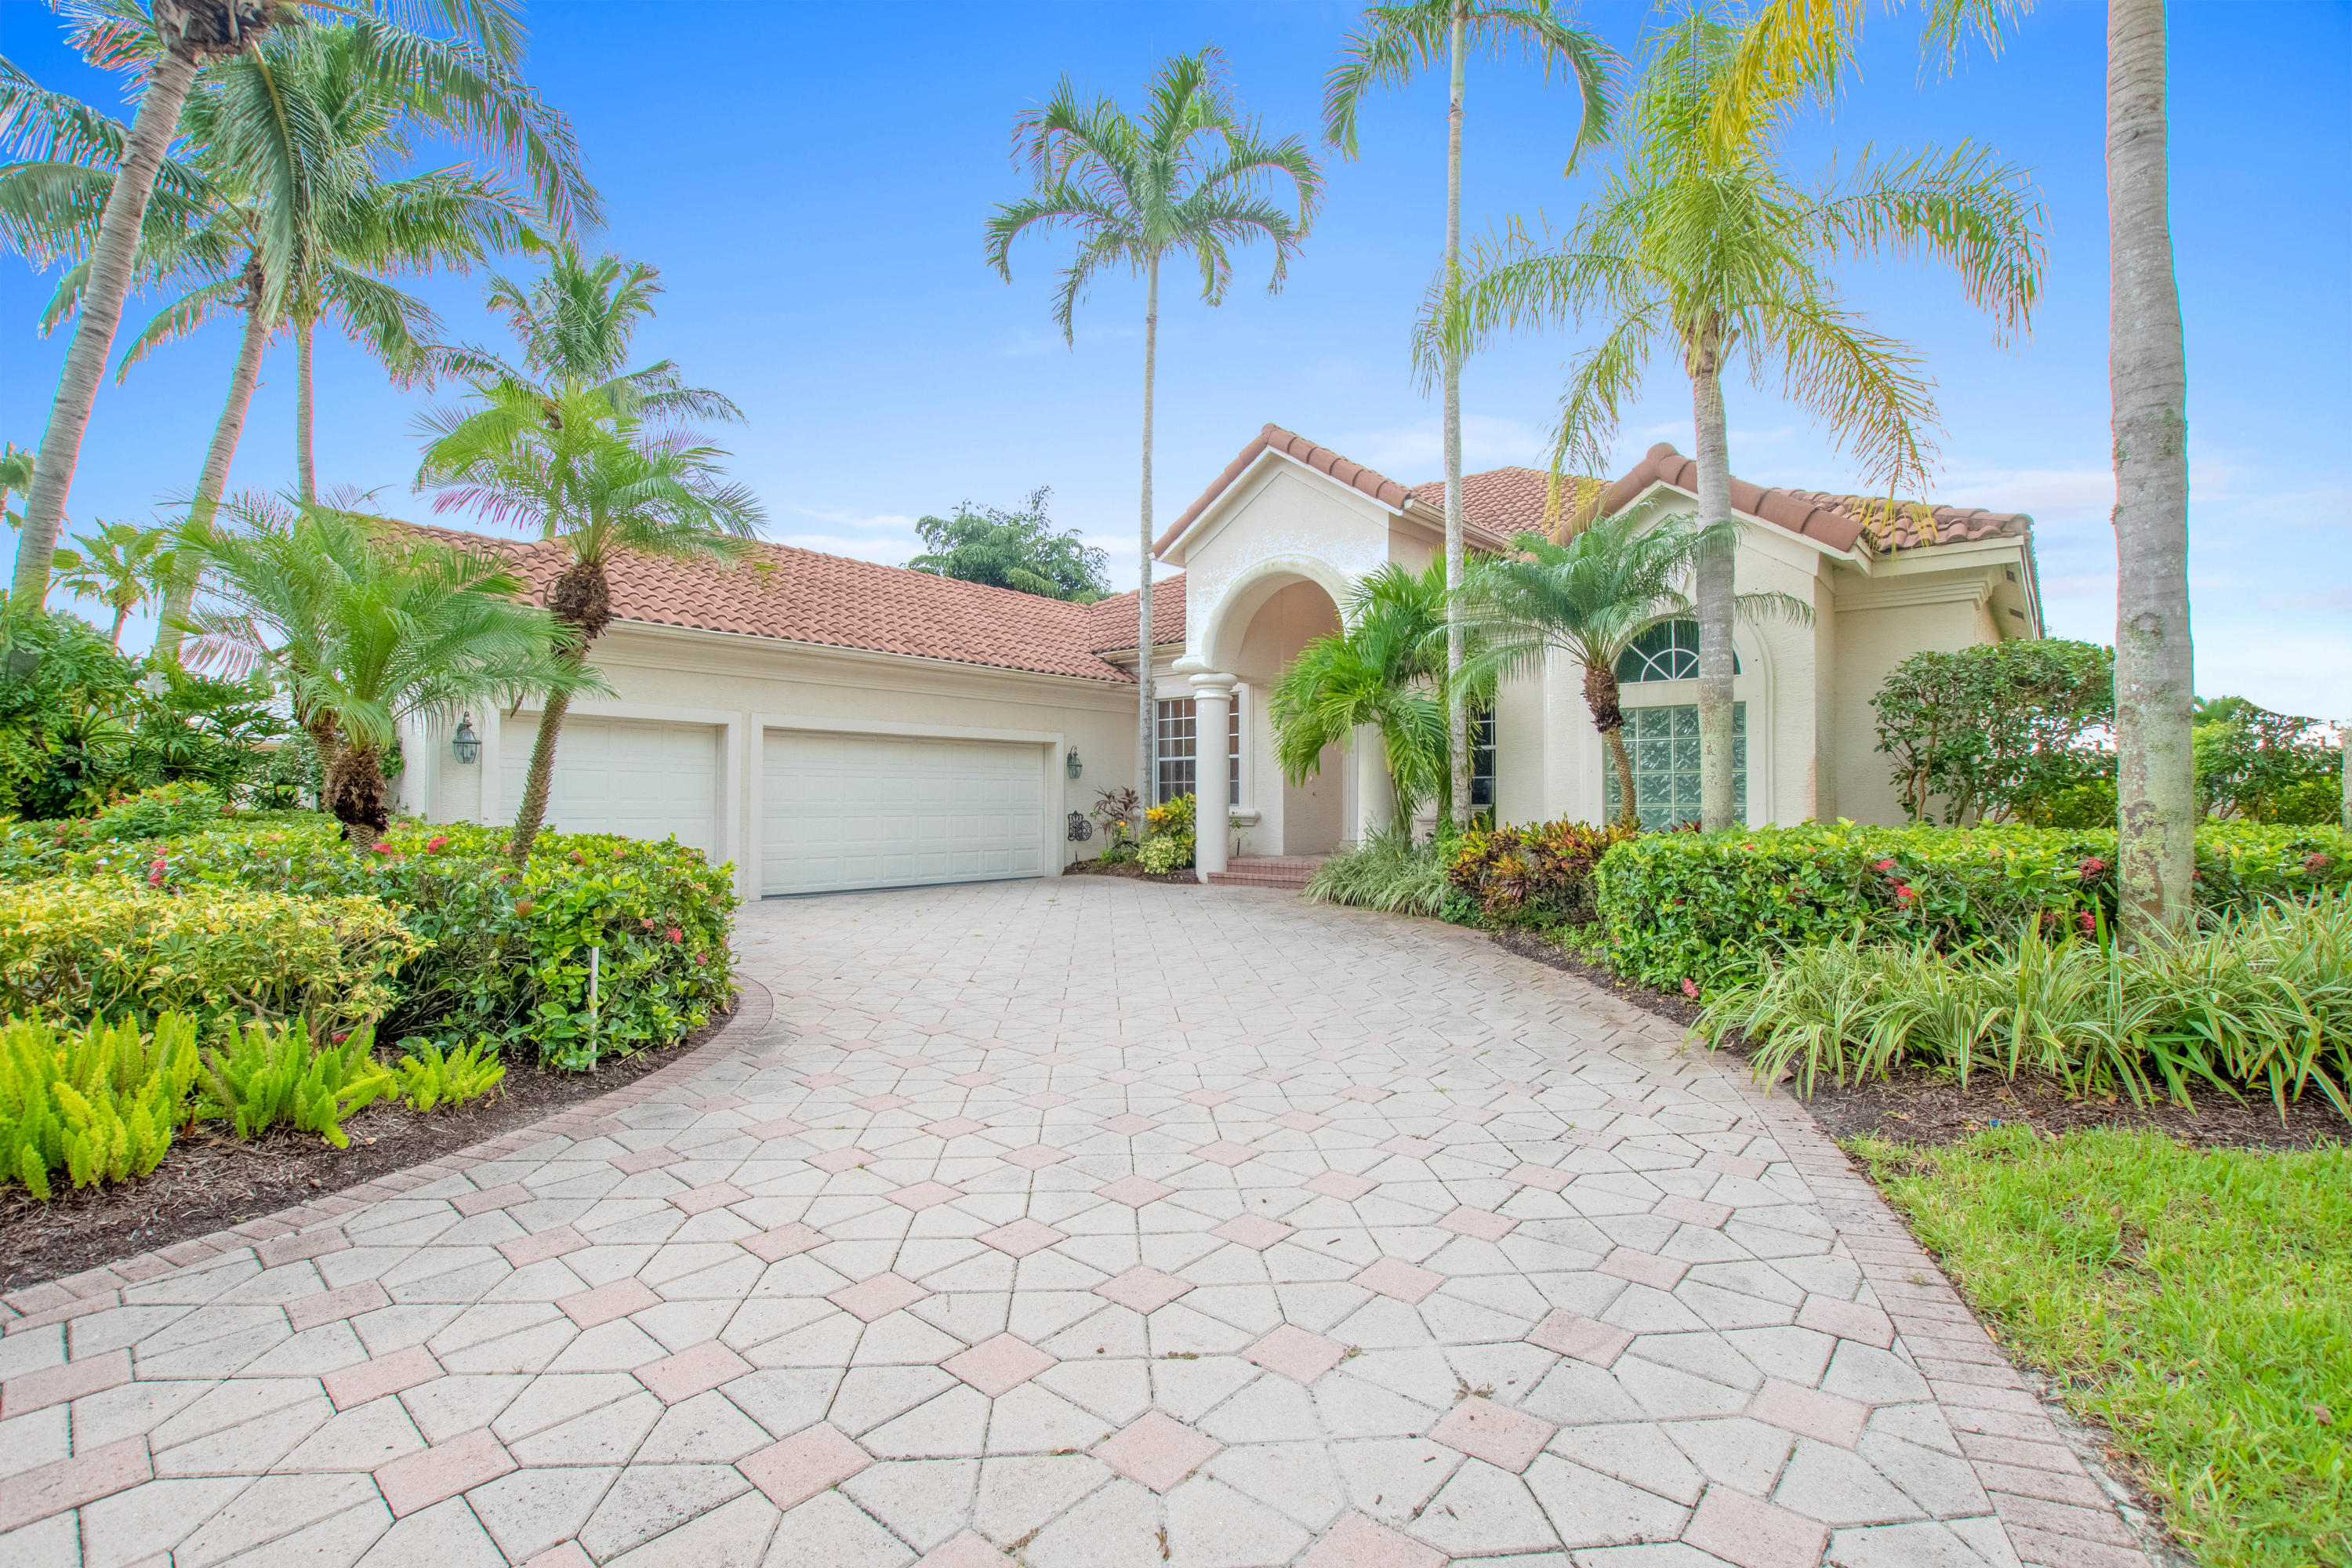 12490 Sunnydale Drive, Wellington, Florida 33414, 3 Bedrooms Bedrooms, ,3.1 BathroomsBathrooms,Single Family,For Sale,PALM BEACH POLO,Sunnydale,1,RX-10453547